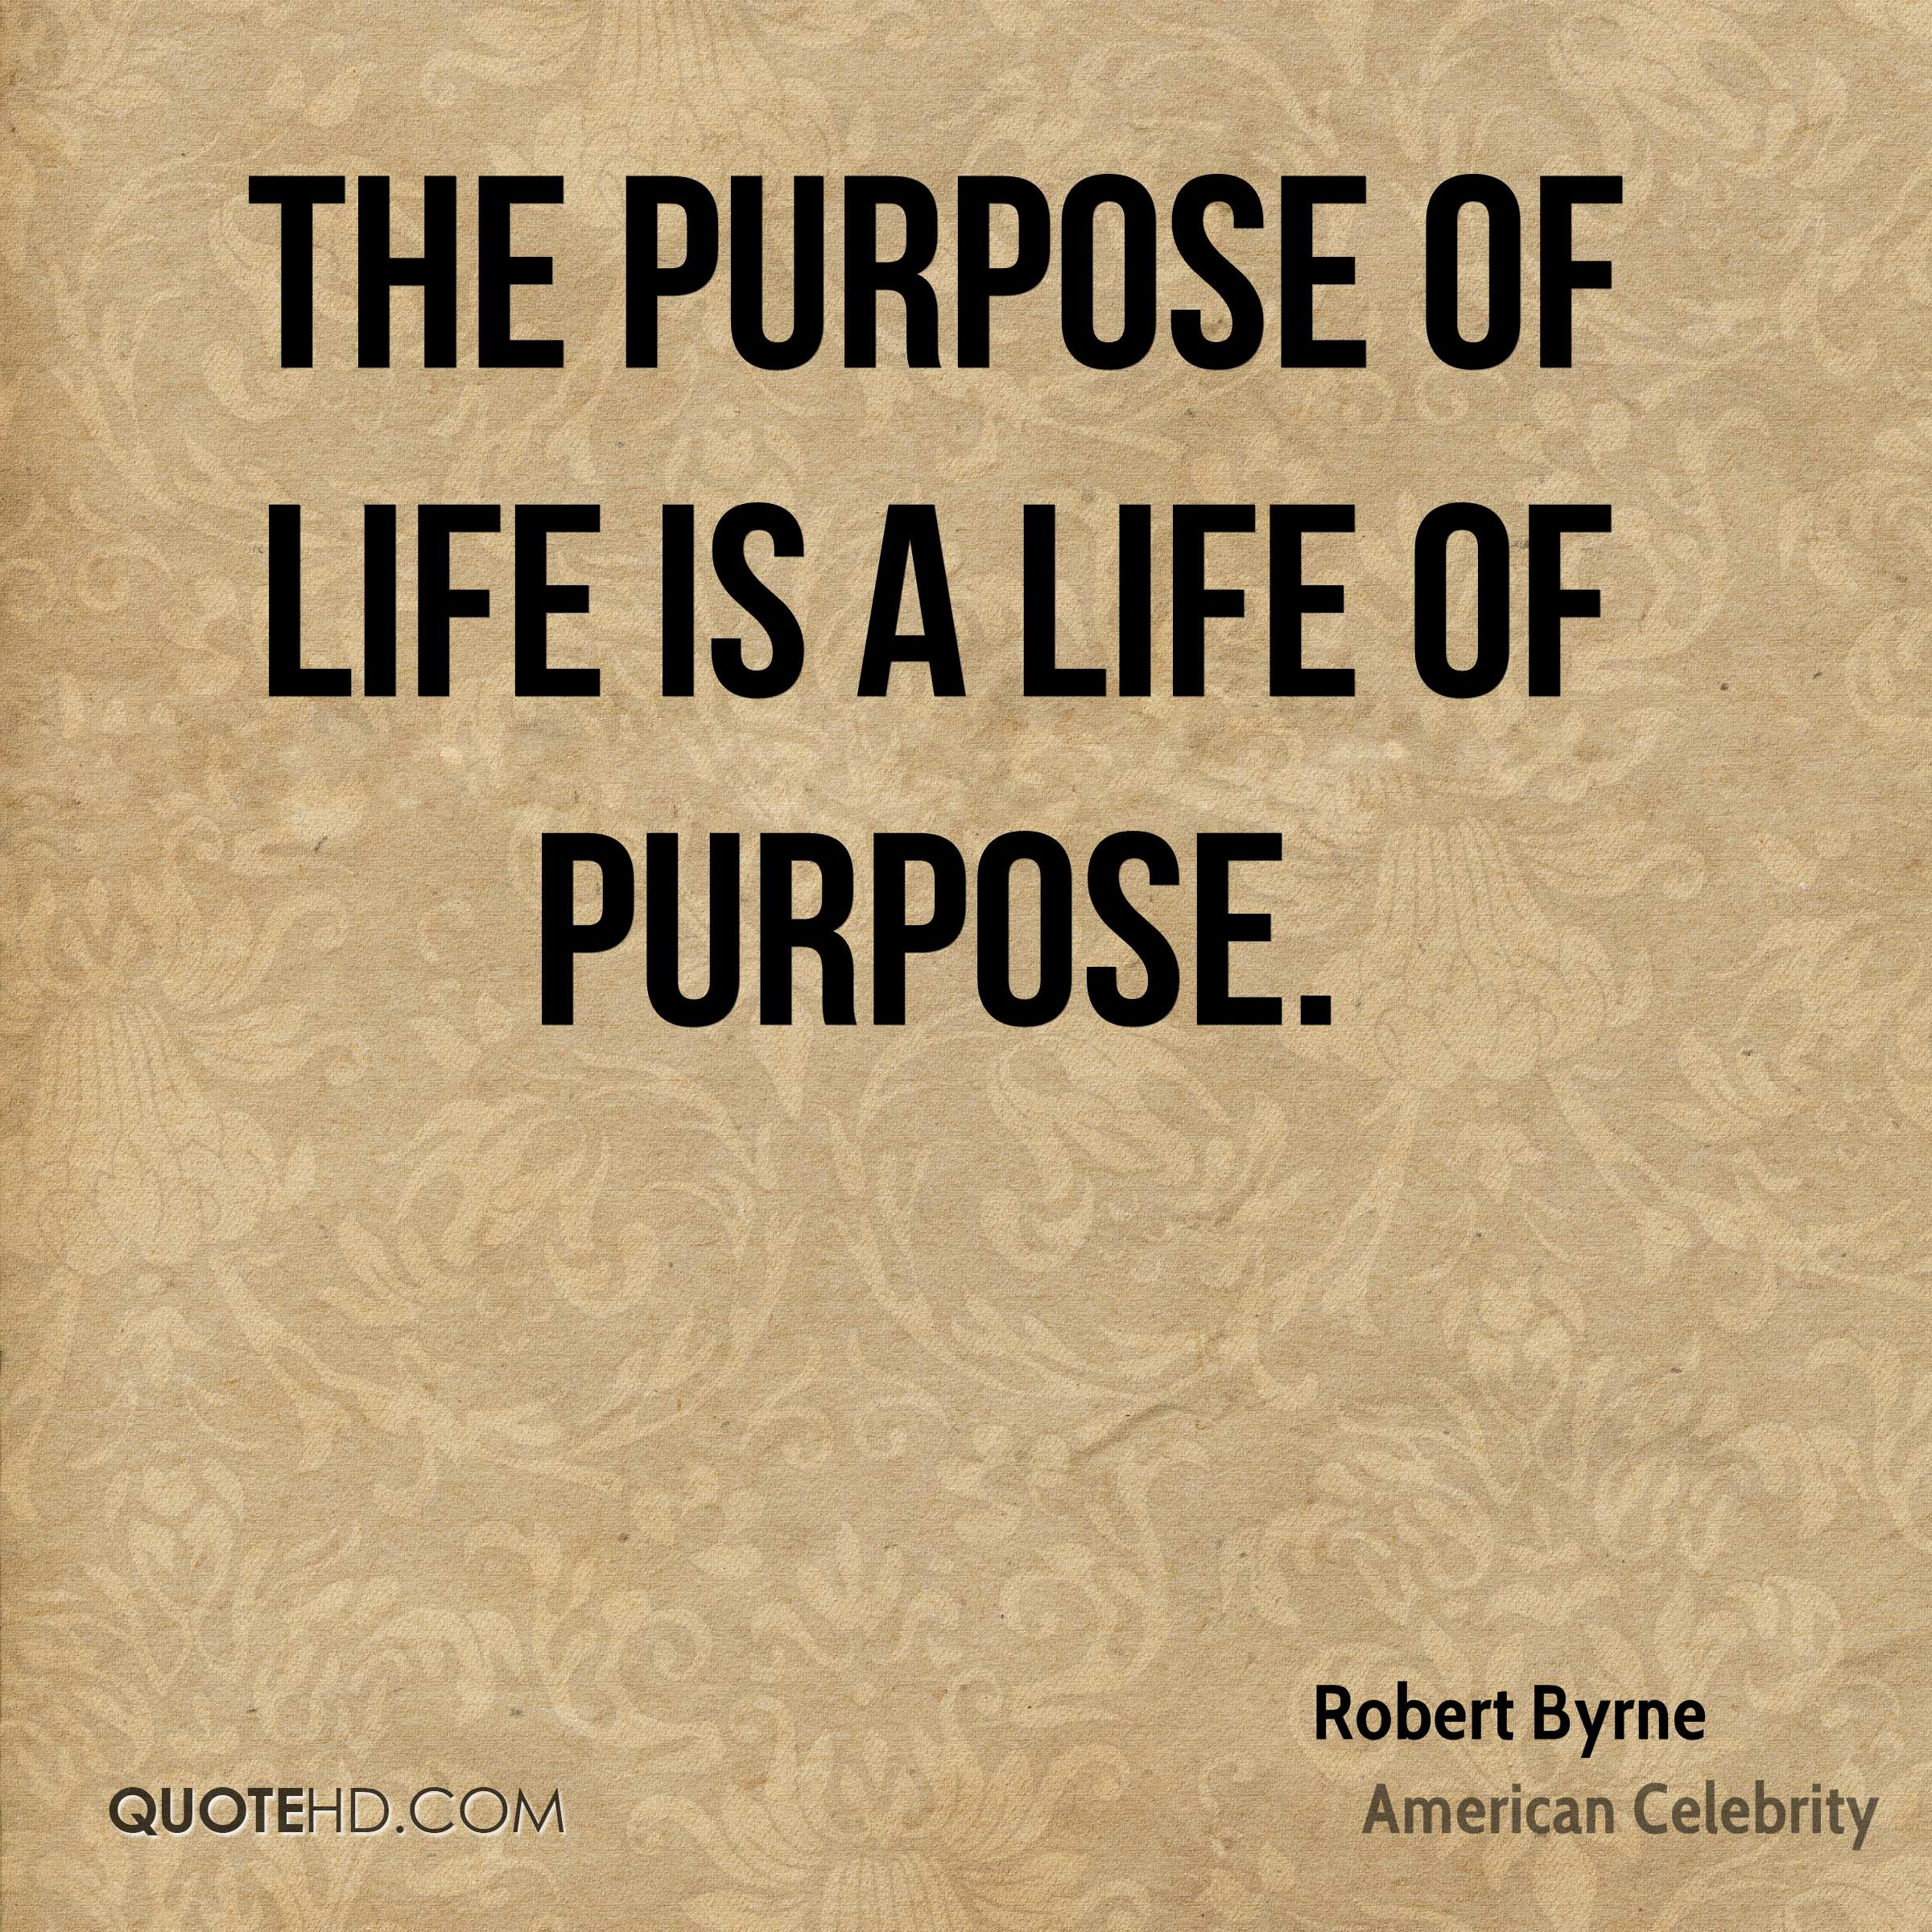 Quotes Purpose Of Life Robert Byrne Life Quotes  Quotehd